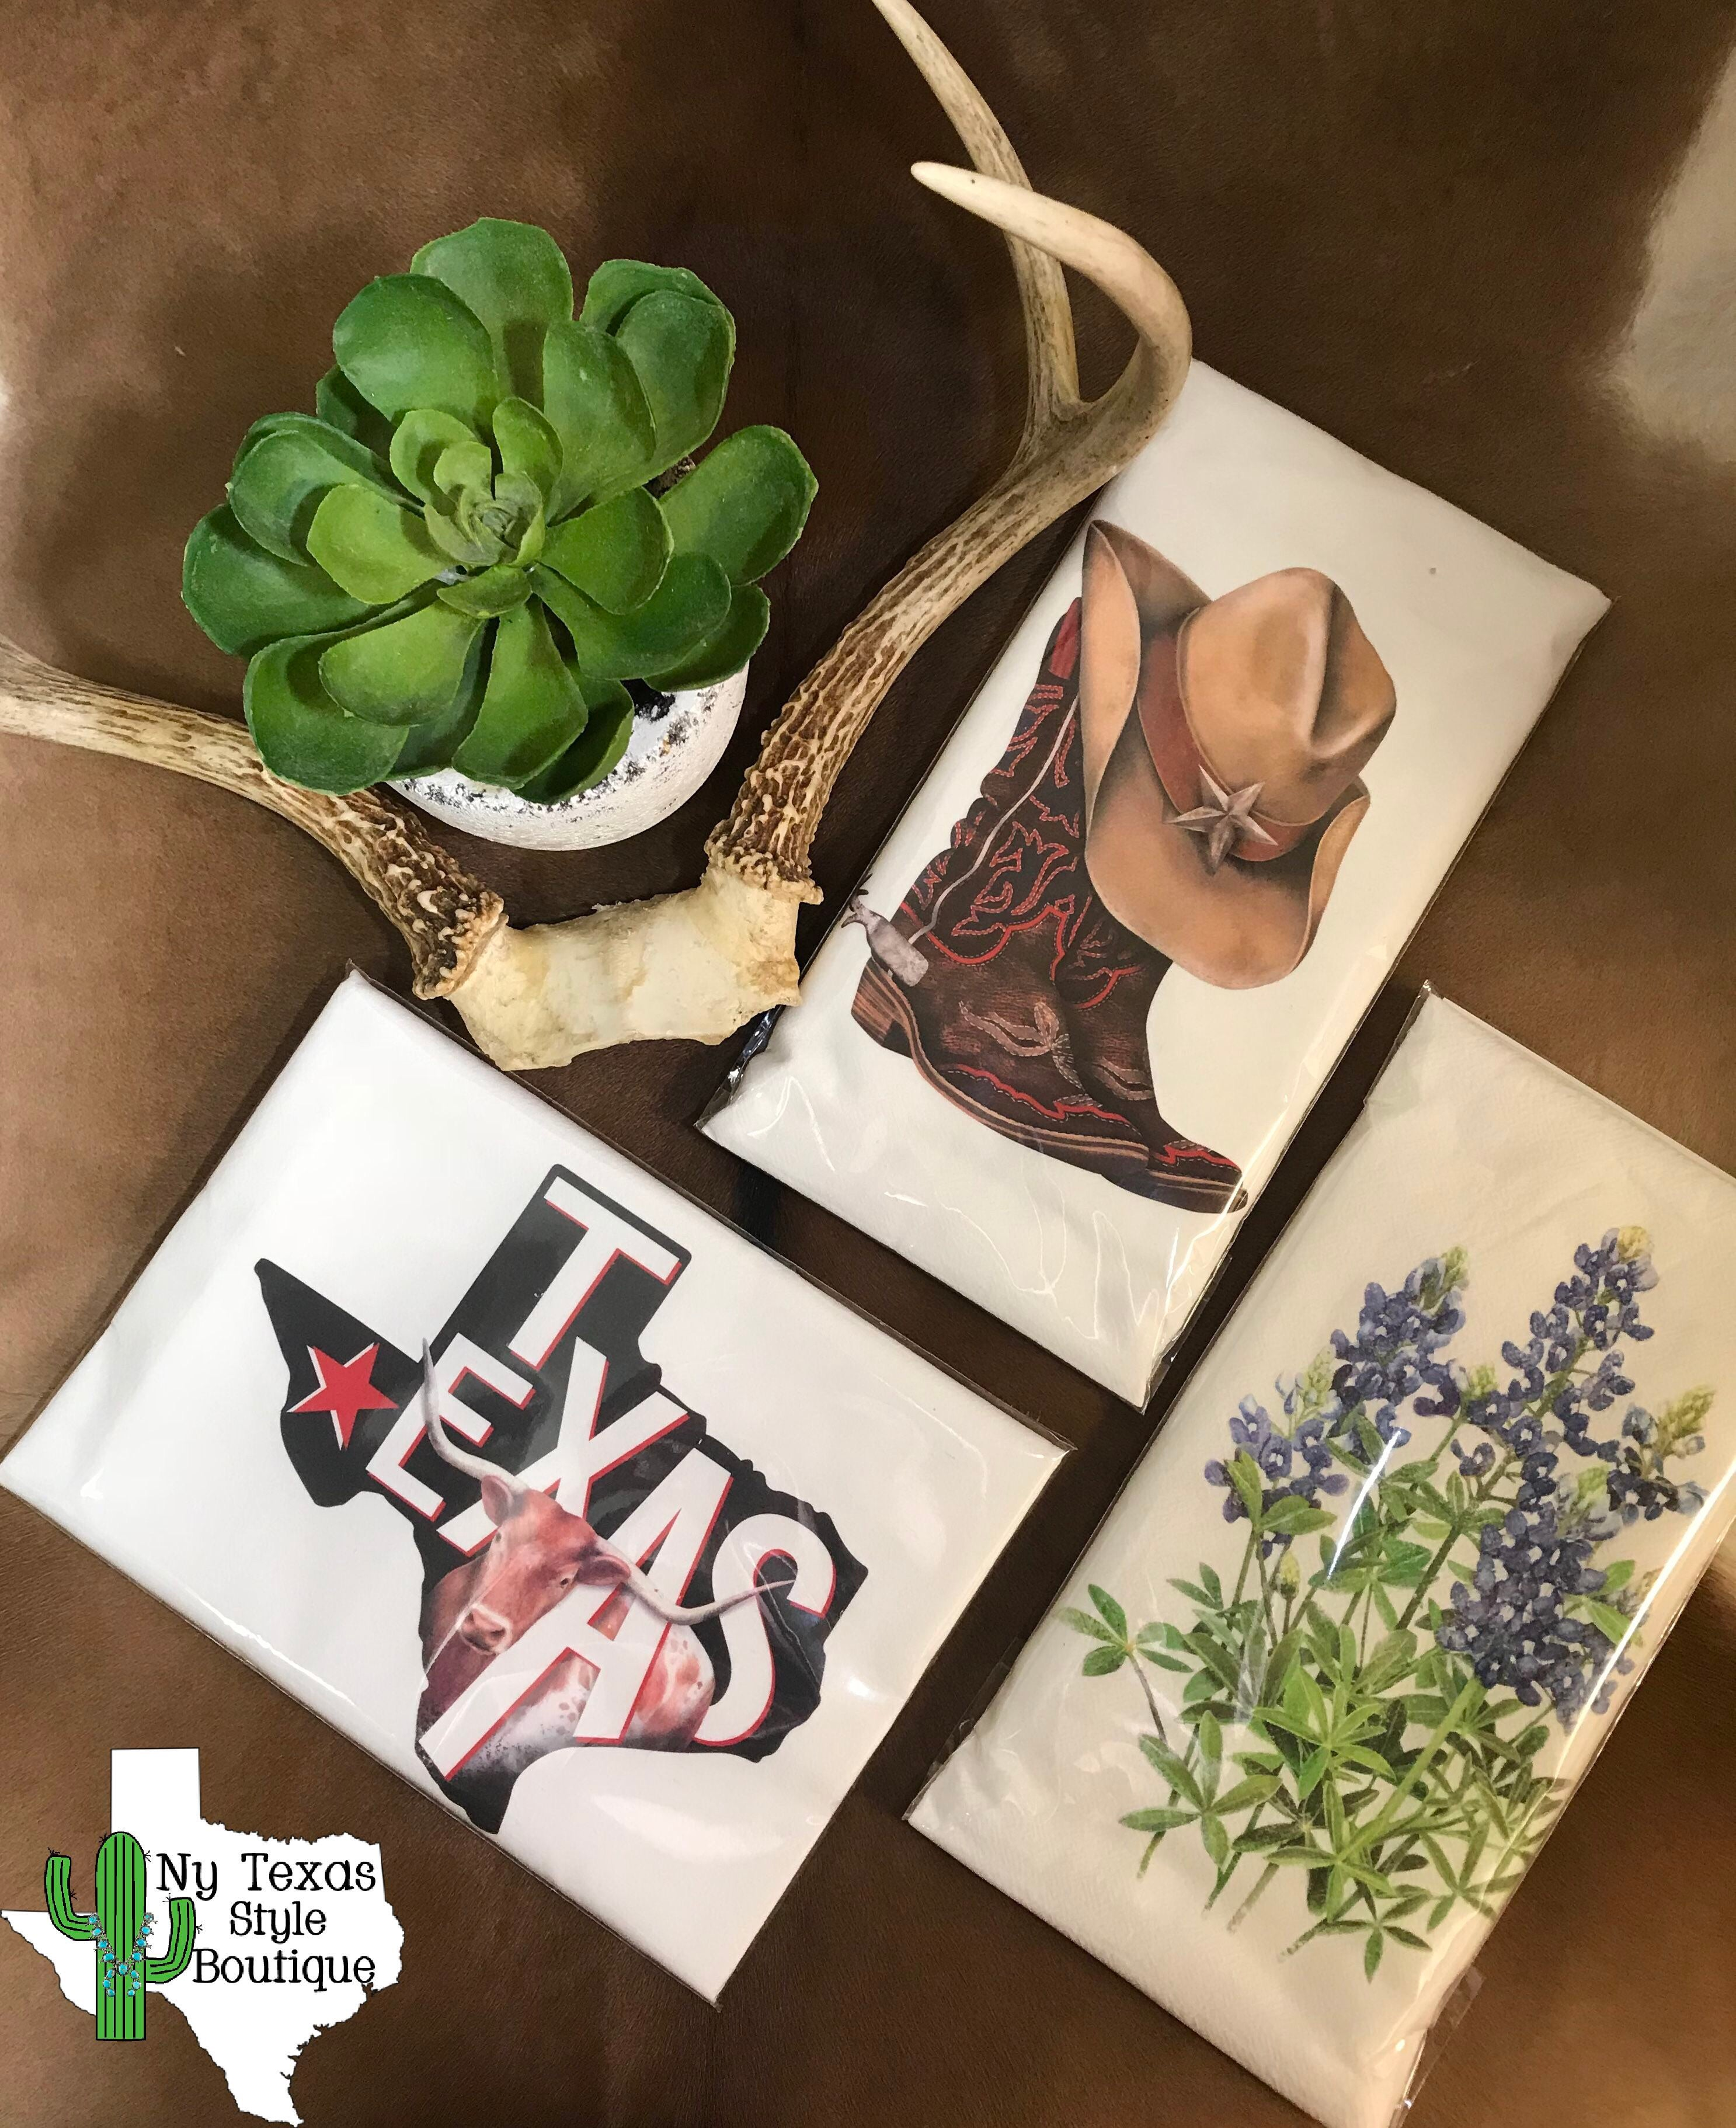 Flour Sack Towels - Ny Texas Style Boutique